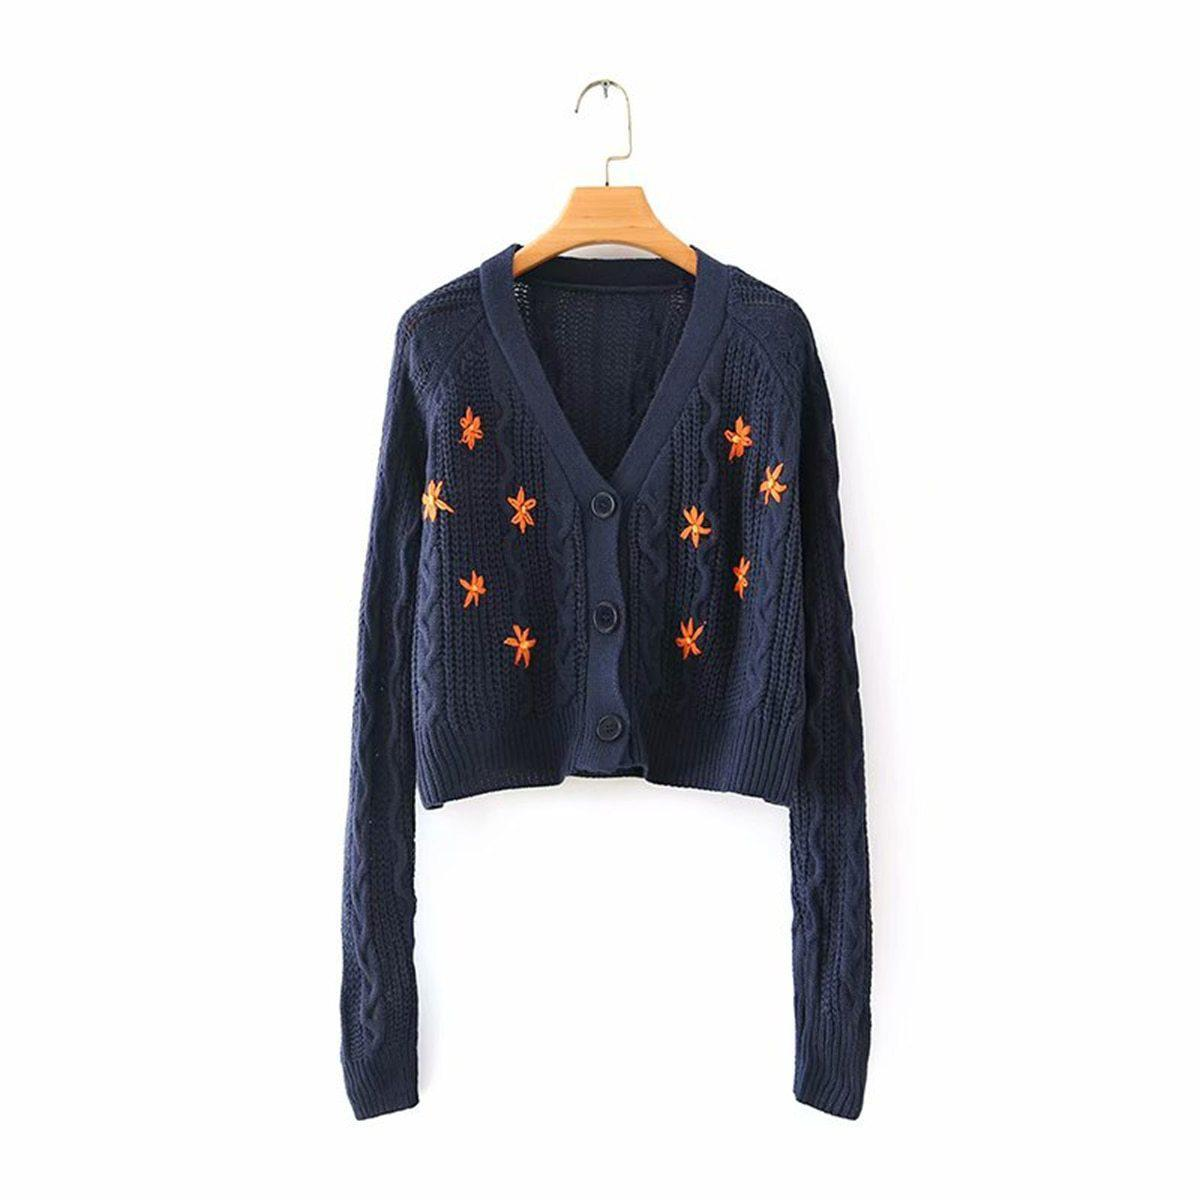 FLORAL EMBROIDERY VINTAGE SWEATER-Cosmique Studio-aesthetic-clothing-store